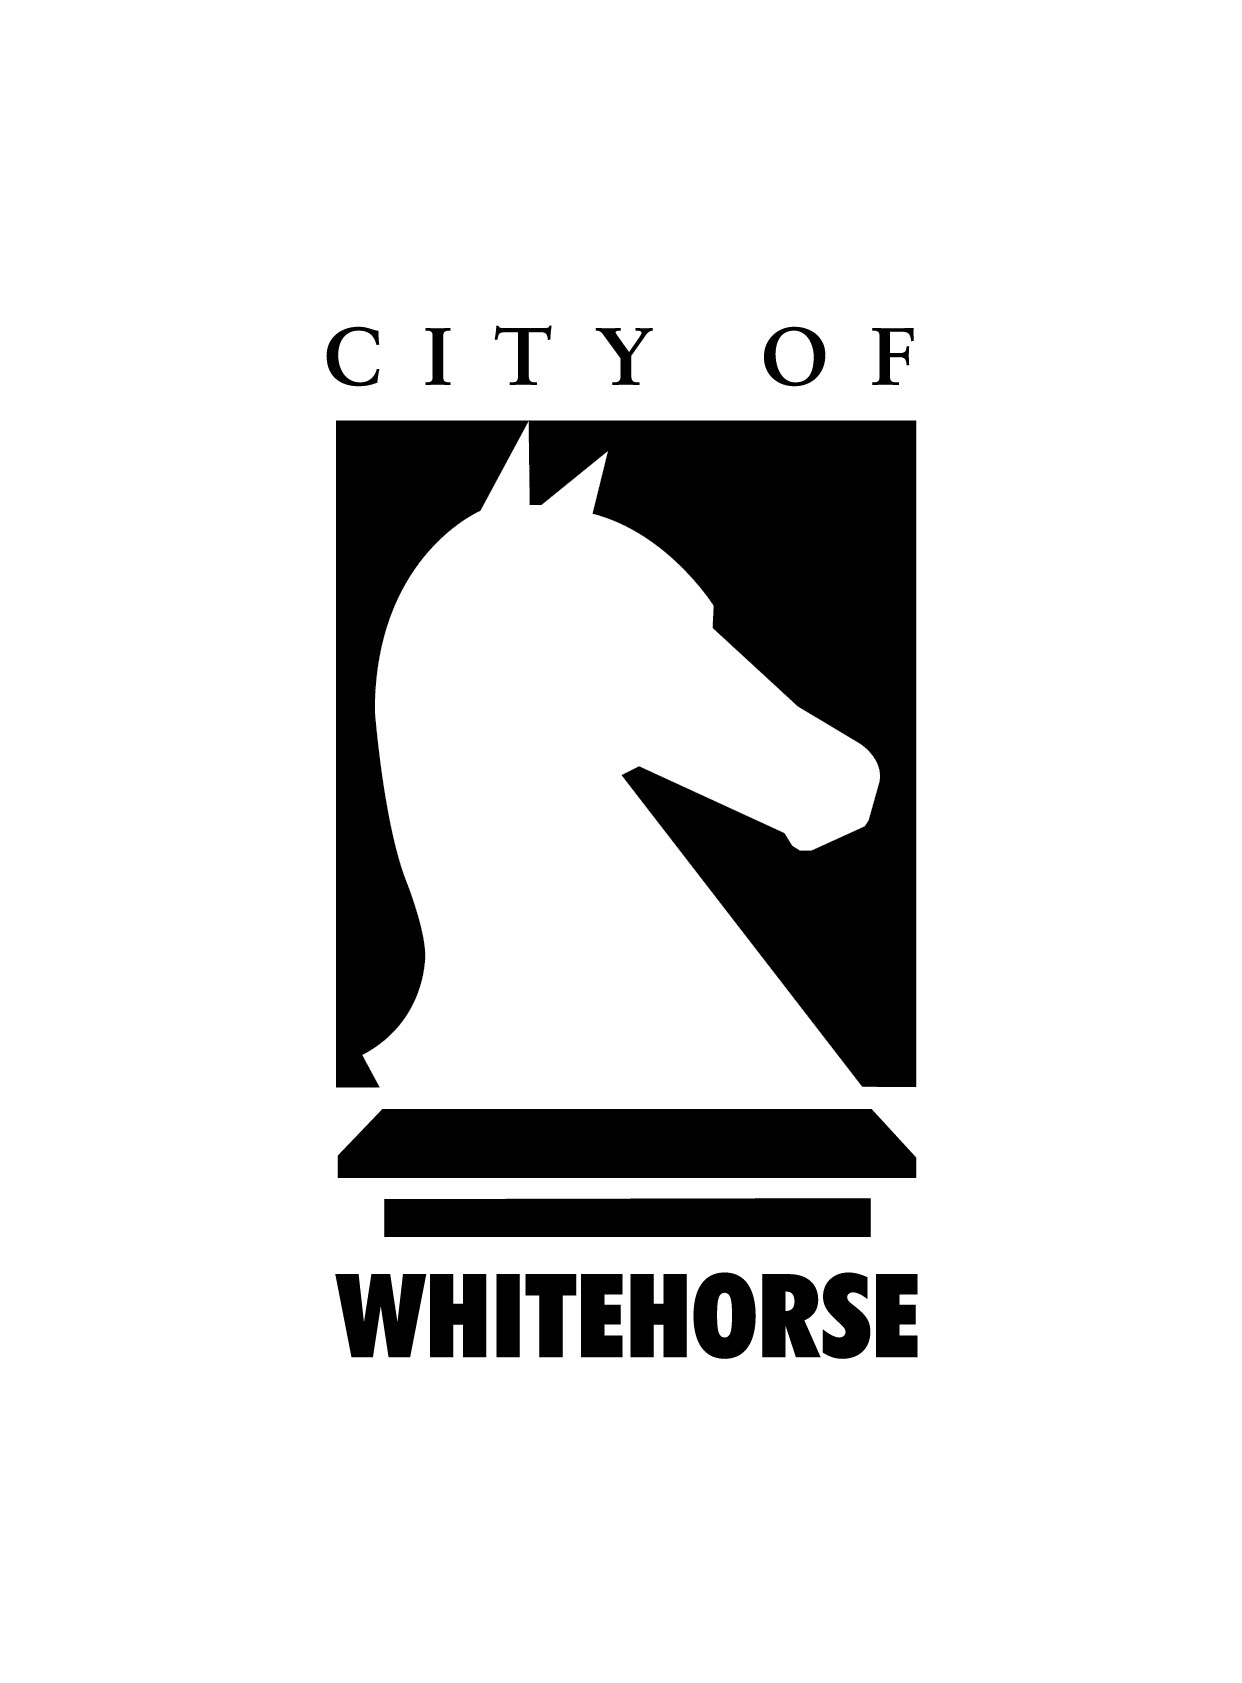 Whitehorse Council logo